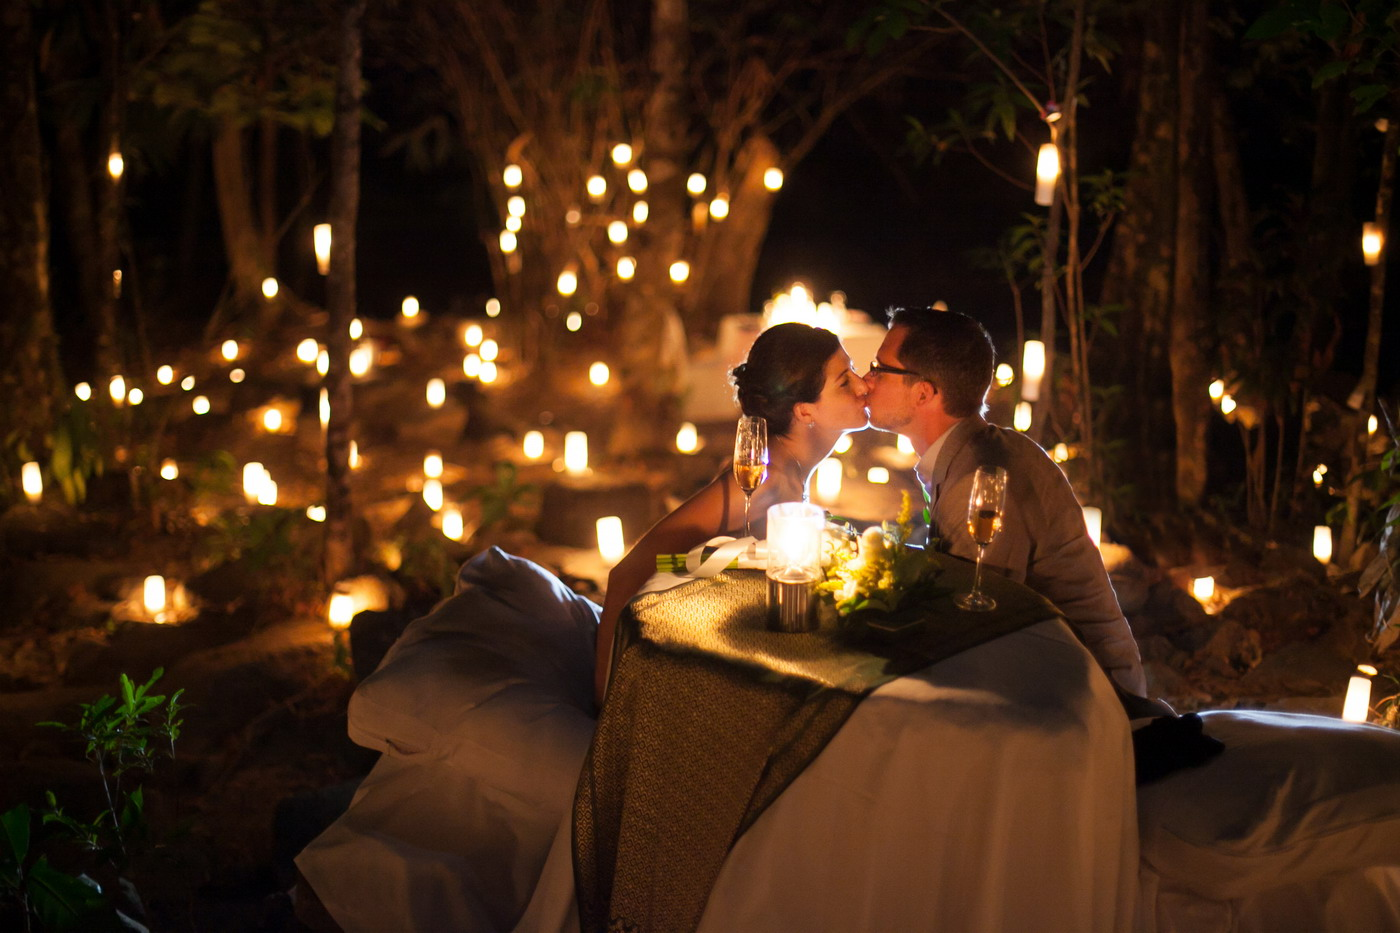 Honeymoon is a lifetime experience so make it unique and special